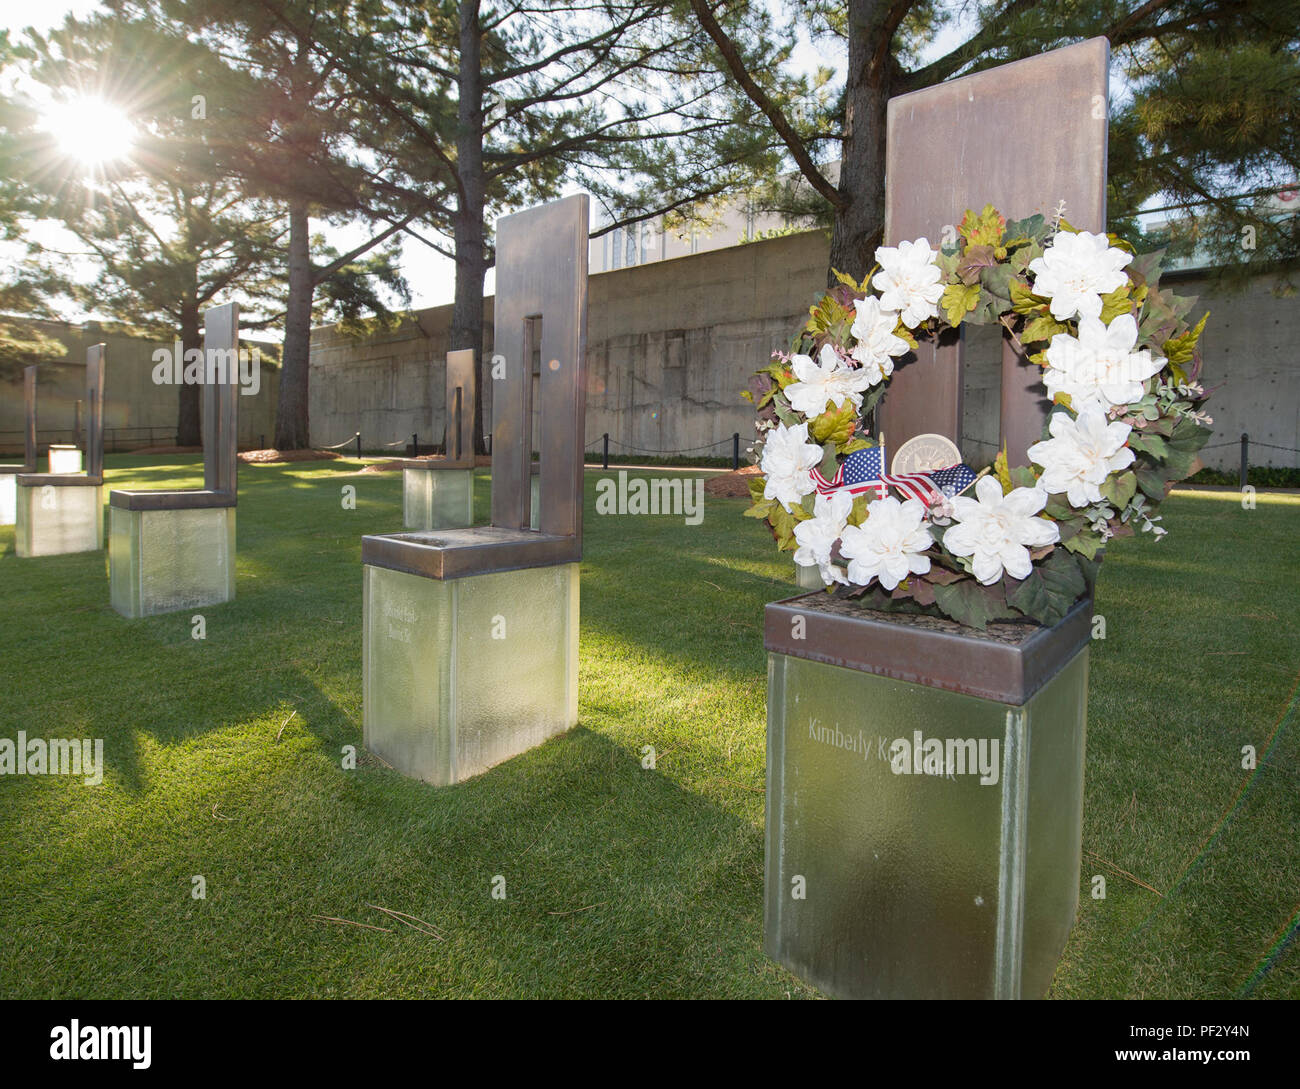 170919-N-KB426-036  OKLAHOMA CITY (Sept. 19, 2017) A wreath lays on Legalman 1st Class Kimberly Kay Clark's memorial at the Oklahoma City National Memorial and Museum during Navy Week Oklahoma City. A Navy Reservist, Clark was among the 168 killed April 19, 1995 during the Oklahoma City bombing. Navy Week programs serve as the principal outreach effort into areas of the country without a significant Navy presence, helping Americans understand that their Navy is deployed around the world, around the clock, ready to defend America at all times. (U.S. Navy photo by Mass Communication Specialist 2 Stock Photo